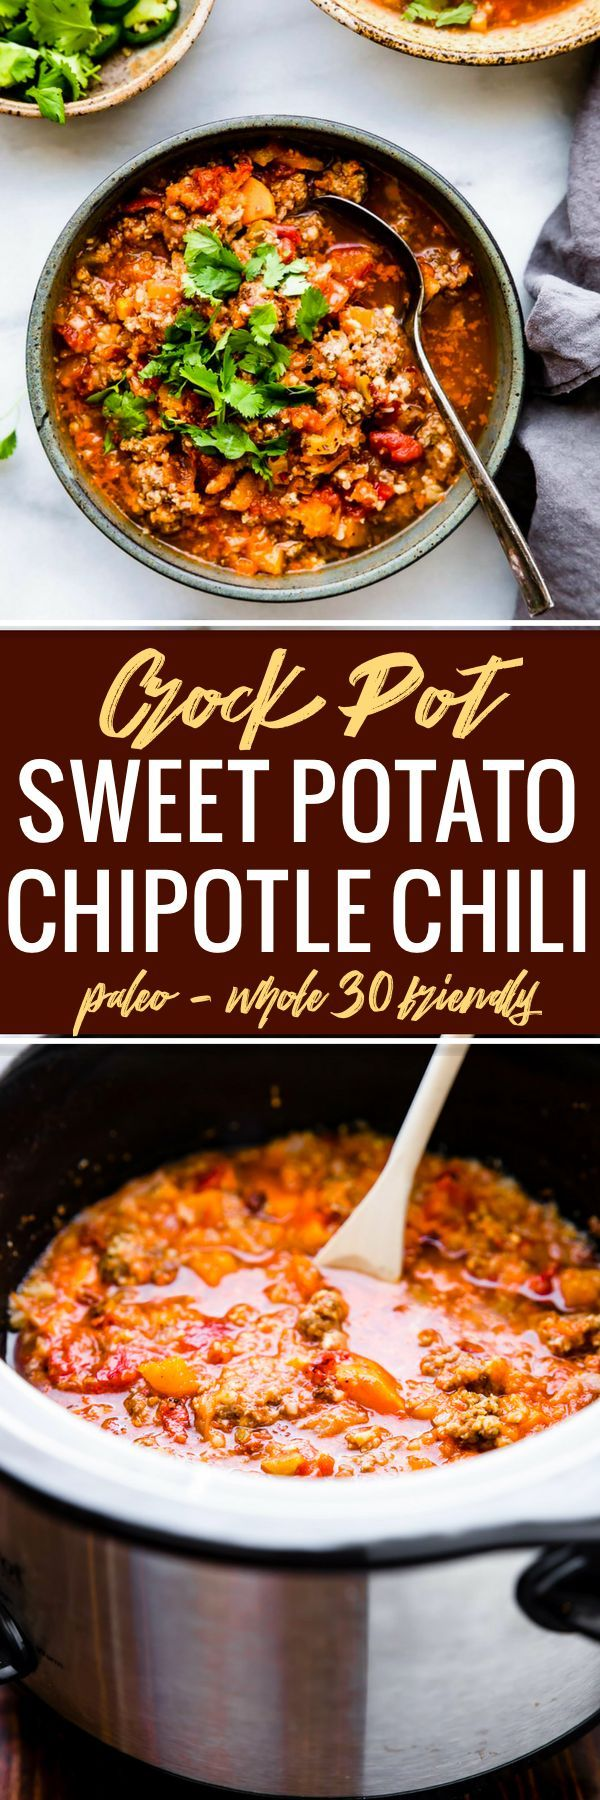 Crock Pot Paleo Sweet Potato Chipotle Chili! This beanless chipotle chili recipe is healthy but hearty, with an extra kick of spice! Made with simple ingredients you probably already have in your fridge! An easy whole 30 and paleo friendly chili made in the crock pot so you can be ready to serve with little effort.  #paleo #crockpot #chili